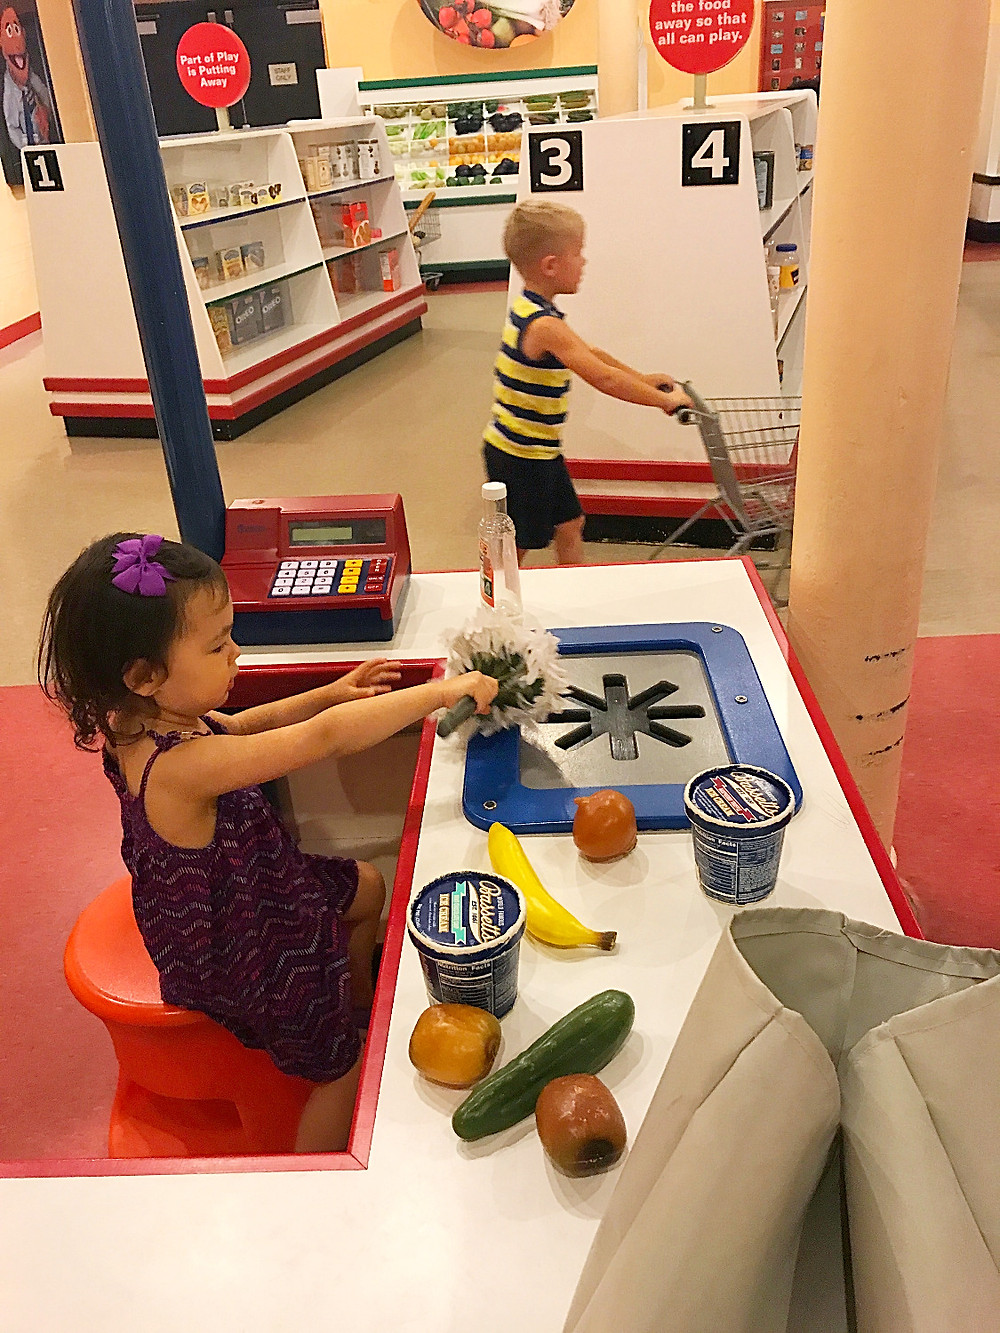 Please Touch Museum, best children's museums, carousel, Curious G and Me, young explorers, imagination, kite making